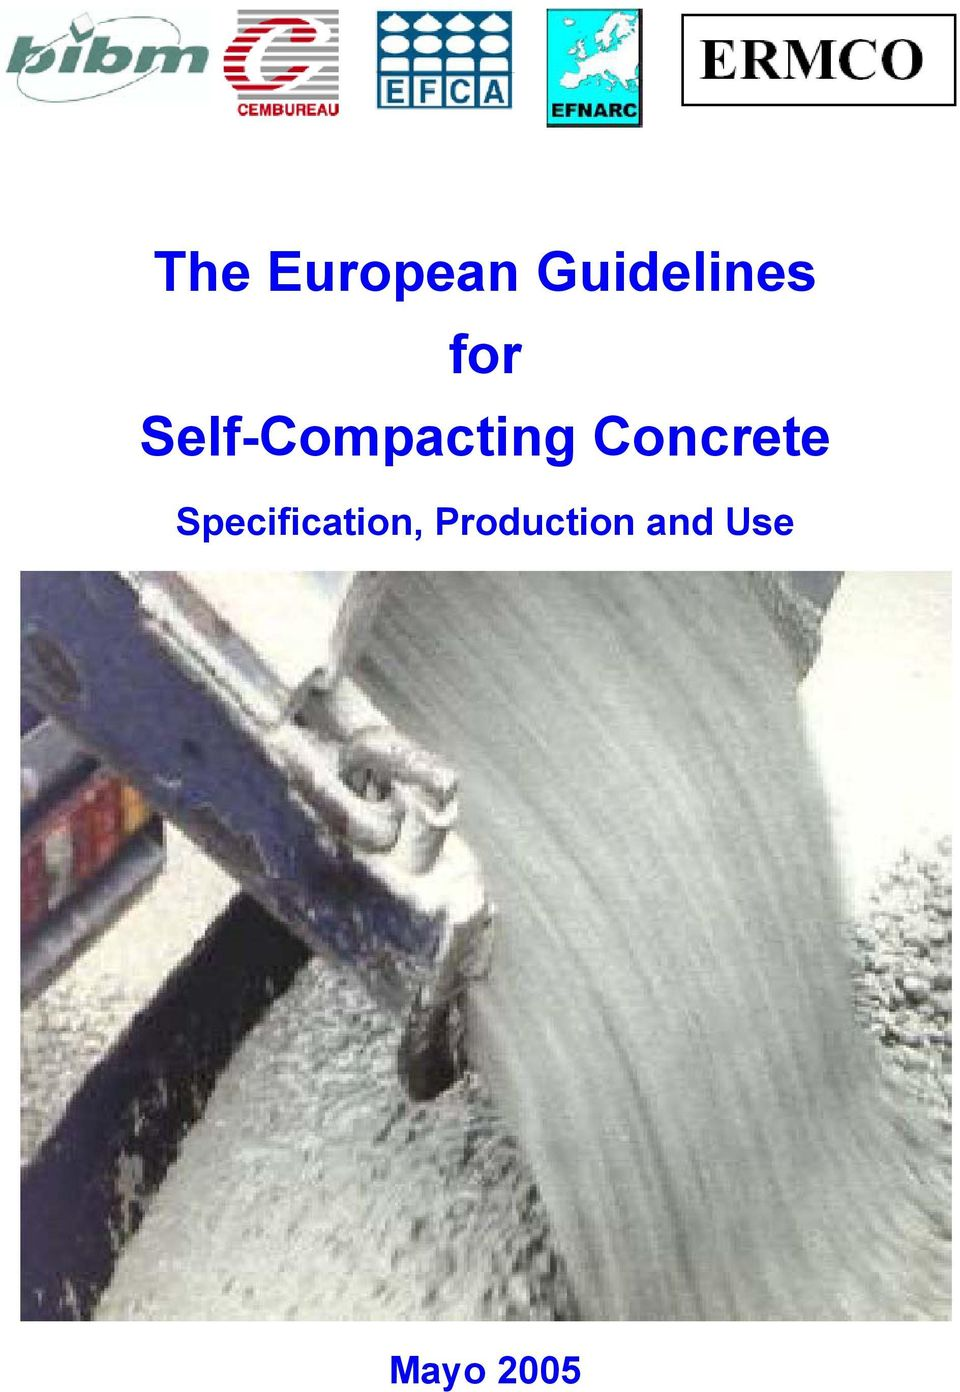 Concrete Specification,